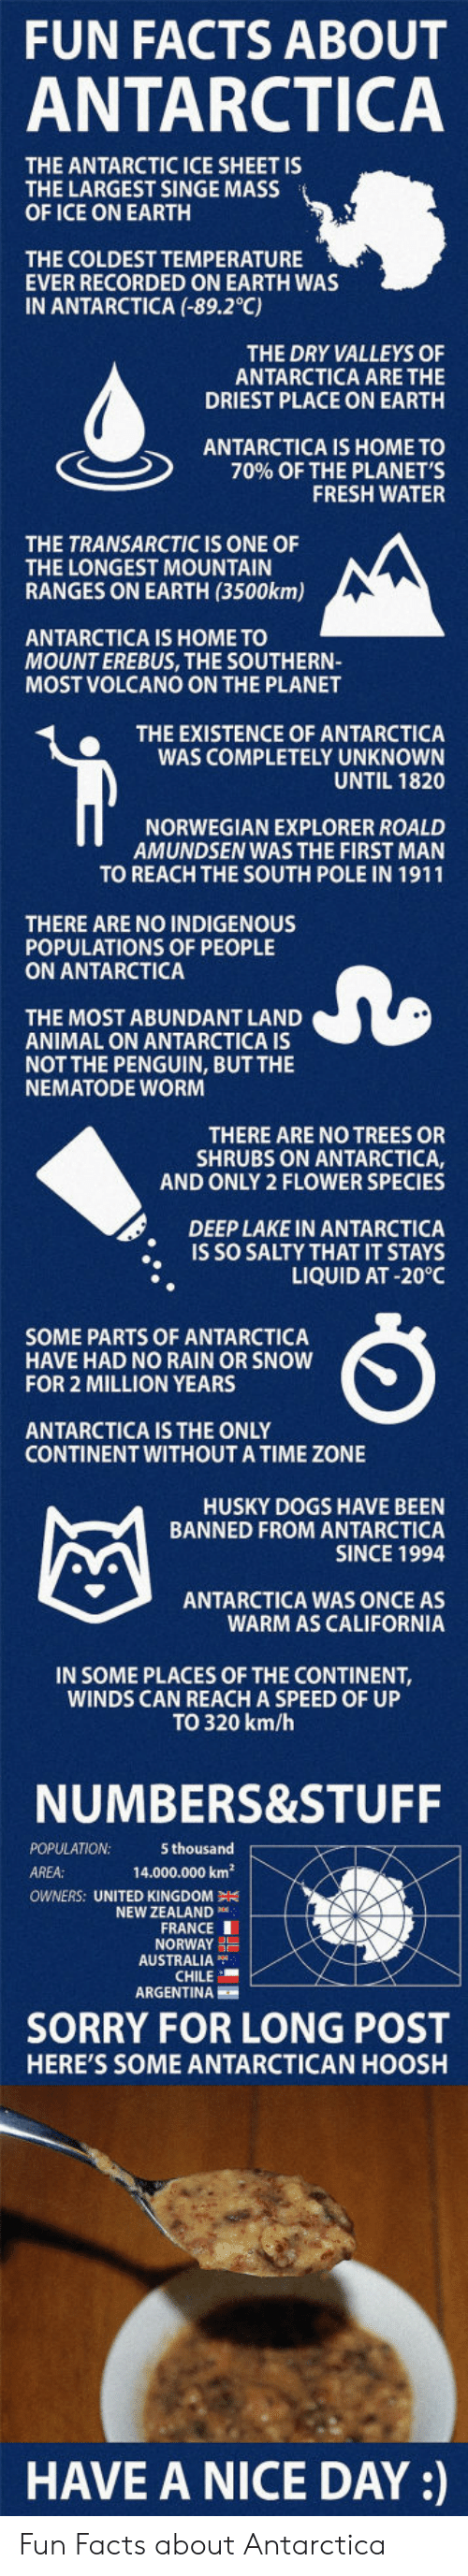 antarctic: FUN FACTS ABOUT  ANTARCTICA  THE ANTARCTIC ICE SHEET IS  THE LARGEST SINGE MASS  OF ICE ON EARTH  THE COLDEST TEMPERATURE  EVER RECORDED ON EARTH WAS  IN ANTARCTICA (-89.2°C)  THE DRY VALLEYS OF  ANTARCTICA ARE THE  DRIEST PLACE ON EARTH  ANTARCTICA IS HOME TO  70% OF THE PLANET'S  FRESH WATER  THE TRANSARCTIC IS ONE OF  THE LONGEST MOUNTAIN  RANGES ON EARTH (3500km)  ANTARCTICA IS HOME TO  MOUNT EREBUS, THE SOUTHERN-  MOST VOLCANO ON THE PLANET  THE EXISTENCE OF ANTARCTICA  WAS COMPLETELY UNKNOWN  UNTIL 1820  NORWEGIAN EXPLORER ROALD  AMUNDSEN WAS THE FIRST MAN  TO REACH THE SOUTH POLE IN 1911  THERE ARE NO INDIGENOUS  POPULATIONS OF PEOPLE  ON ANTARCTICA  THE MOST ABUNDANT LAND  ANIMAL ON ANTARCTICA IS  NOT THE PENGUIN, BUT THE  NEMATODE WOR  THERE ARE NO TREES OR  SHRUBS ON ANTARCTICA,  AND ONLY 2 FLOWER SPECIES  DEEP LAKE IN ANTARCTICA  IS SO SALTY THAT IT STAYS  LIQUID AT -20°C  SOME PARTS OF ANTARCTICA  HAVE HAD NO RAIN OR SNOW  FOR 2 MILLION YEARS  ANTARCTICA IS THE ONLY  CONTINENT WITHOUTA TIME ZONE  HUSKY DOGS HAVE BEEN  BANNED FROM ANTARCTICA  SINCE 1994  ANTARCTICA WAS ONCE AS  WARM AS CALIFORNIA  IN SOME PLACES OF THE CONTINENT,  WINDS CAN REACH A SPEED OF UP  TO 320 km/h  NUMBERS&STUFF  POPULATION  AREA:  5 thousand  14.000.000 km2  OWNERS: UNITED KINGDOM  NEW ZEALAND  FRANCE I  NORWAY  AUSTRALIA  CHILE  ARGENTINA  SORRY FOR LONG POST  HERE'S SOME ANTARCTICAN HOOSH  HAVE A NICE DAY: Fun Facts about Antarctica